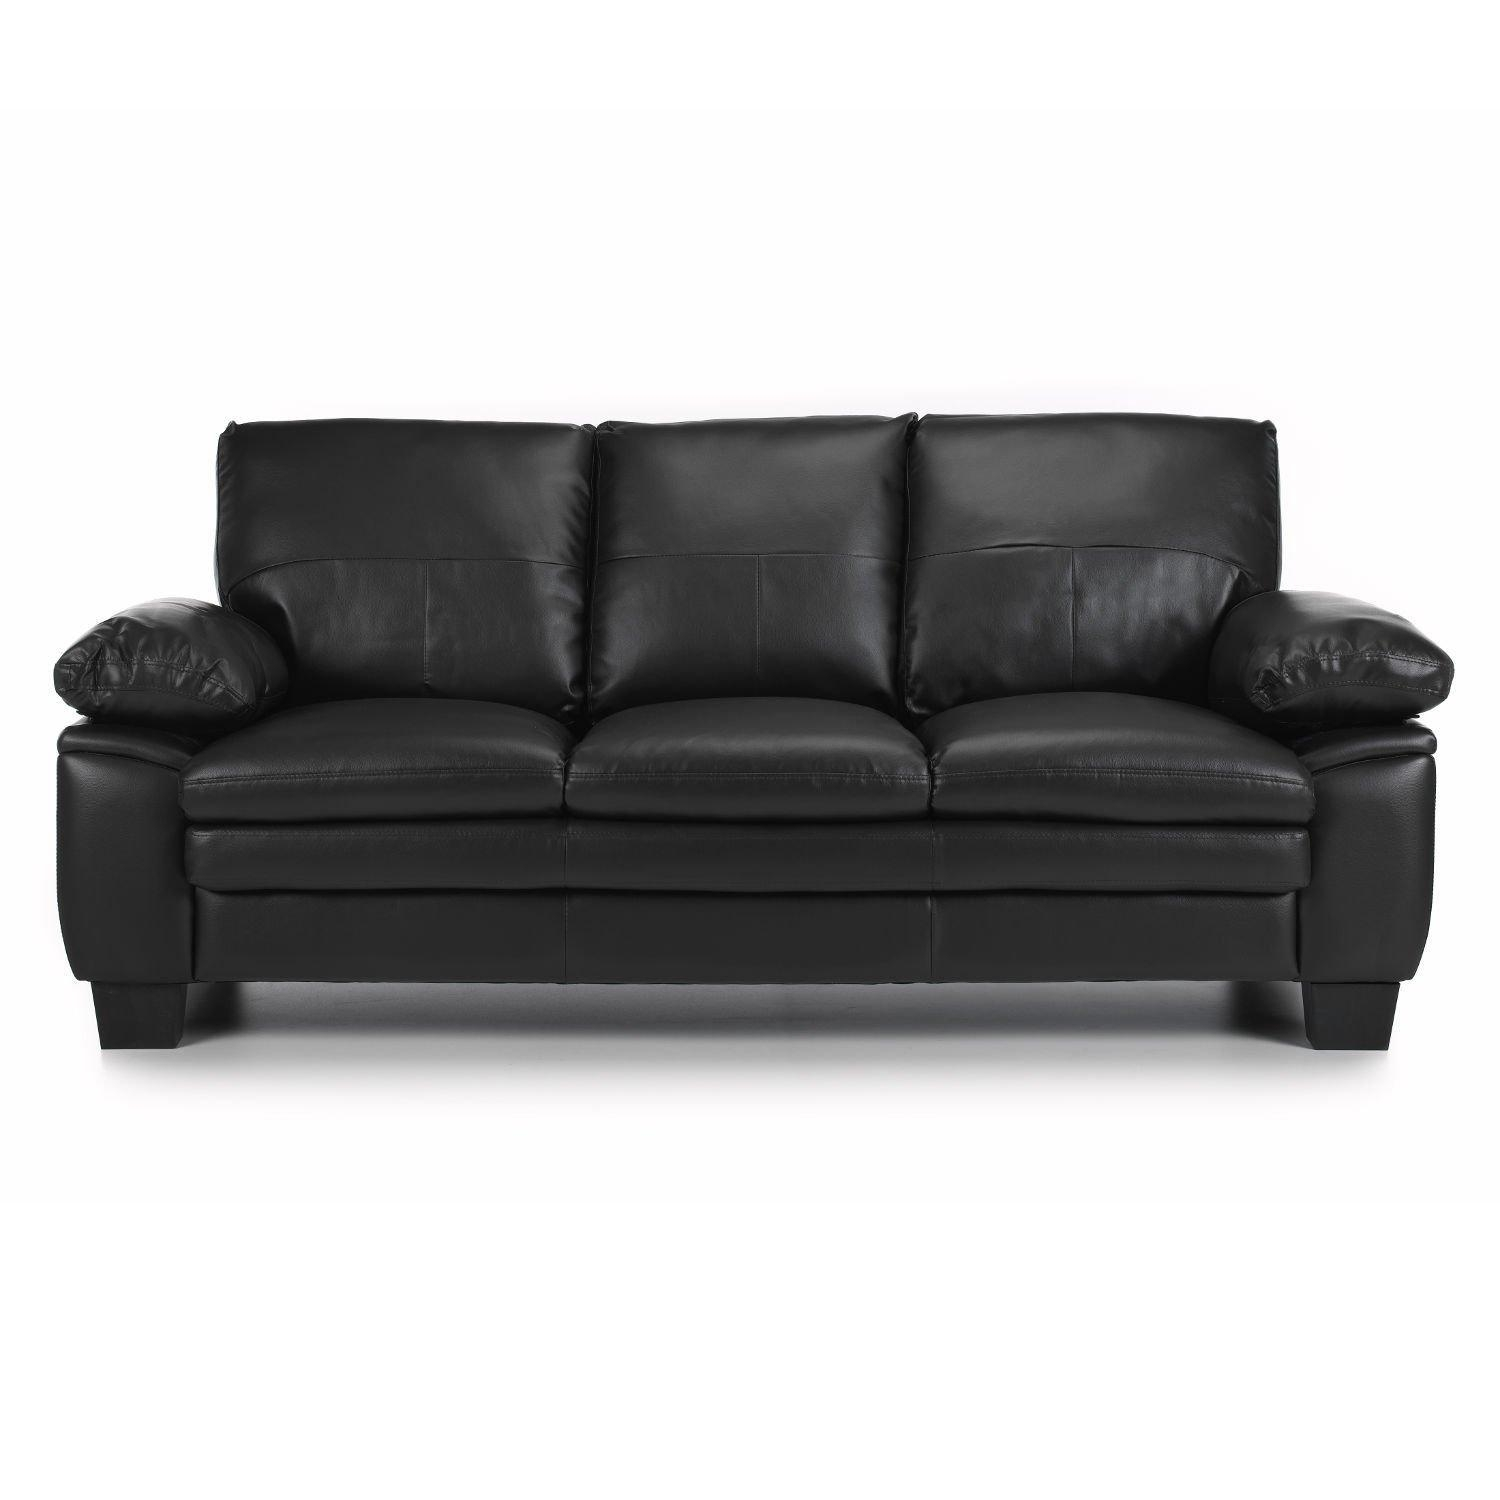 Texas 3 Seater Leather Sofa Next Day Delivery Inside